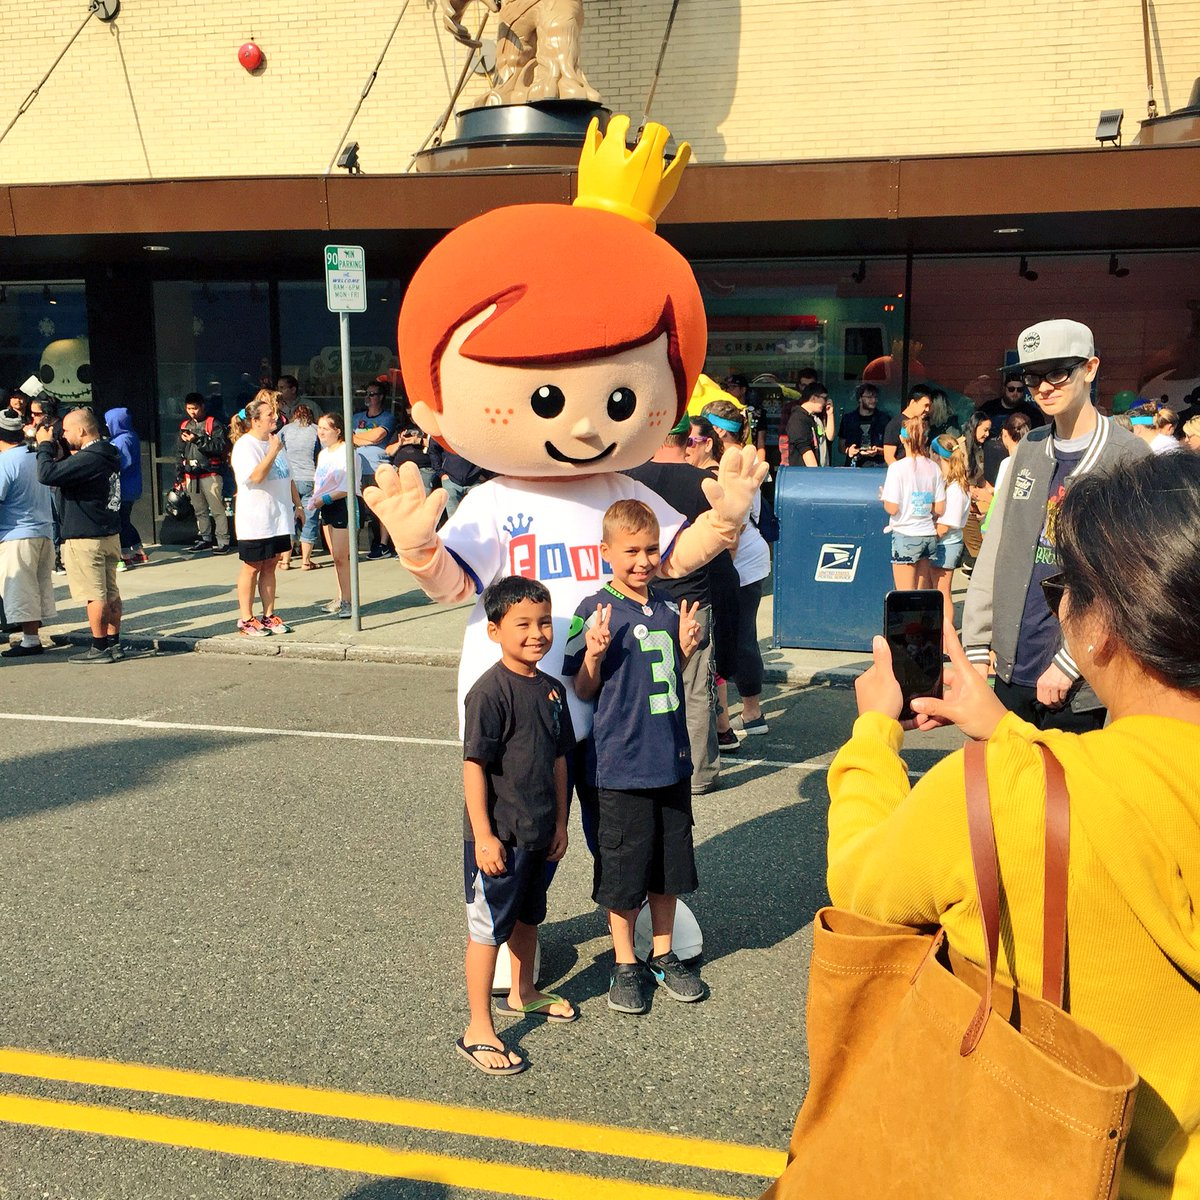 Freddy Funko and Tumblebee are here to celebrate Wetmore Forest! #WetmoreBlockParty